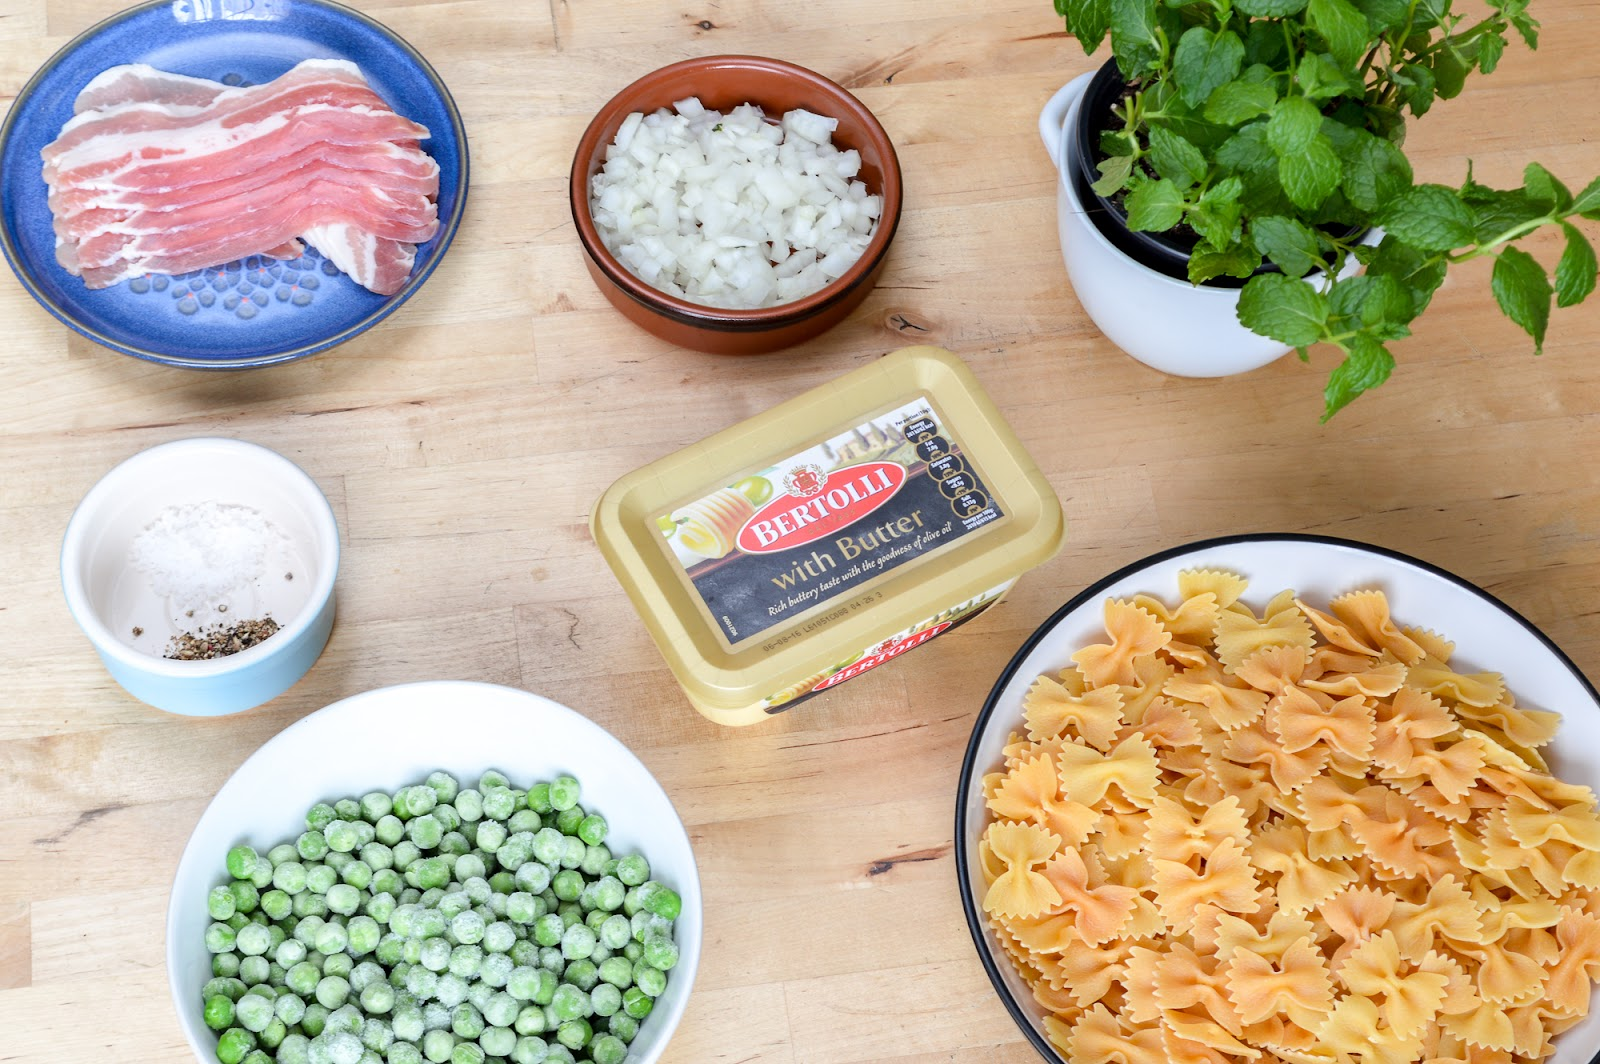 Ingredients for Gennaro's Easy Pancetta Patsa with Peas